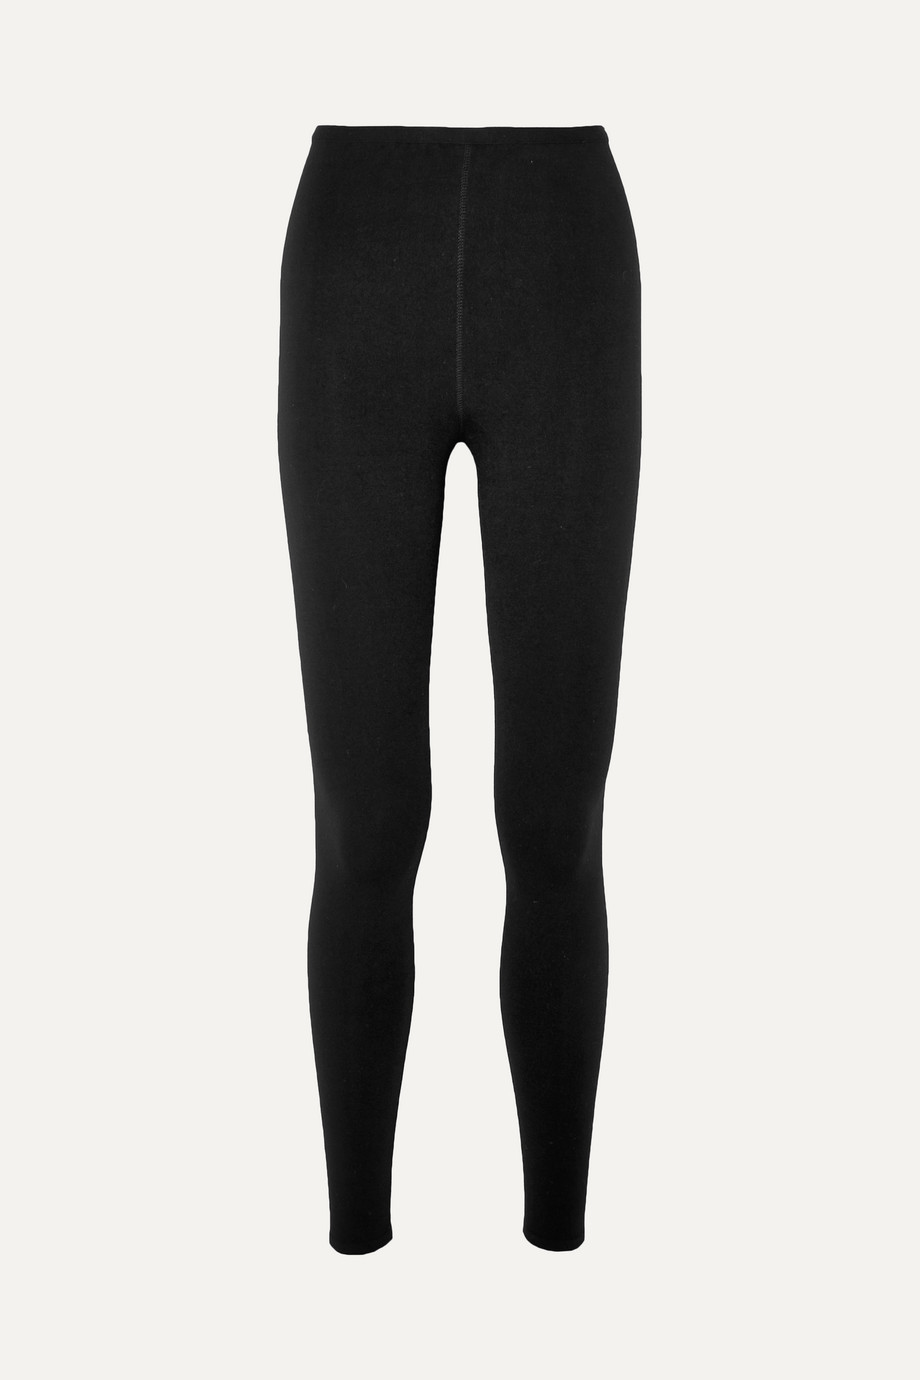 Alaïa Stretch wool-blend leggings